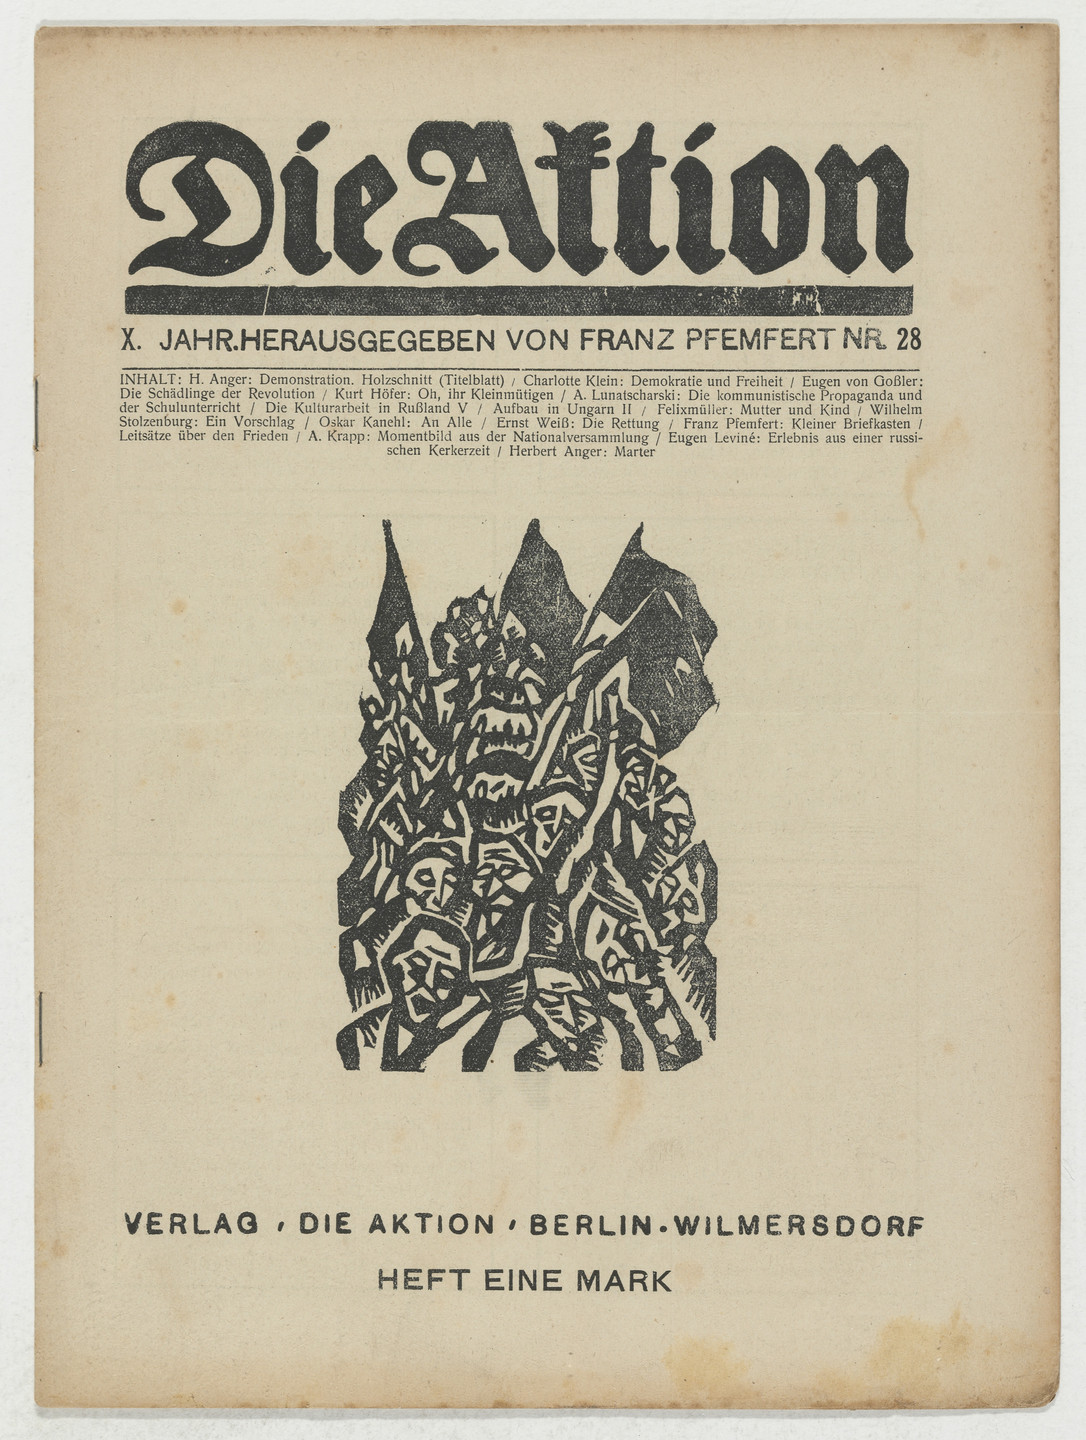 Herbert Anger, Conrad Felixmüller, A. Krapp. Die Aktion, vol. 9, no. 28. July 12, 1919